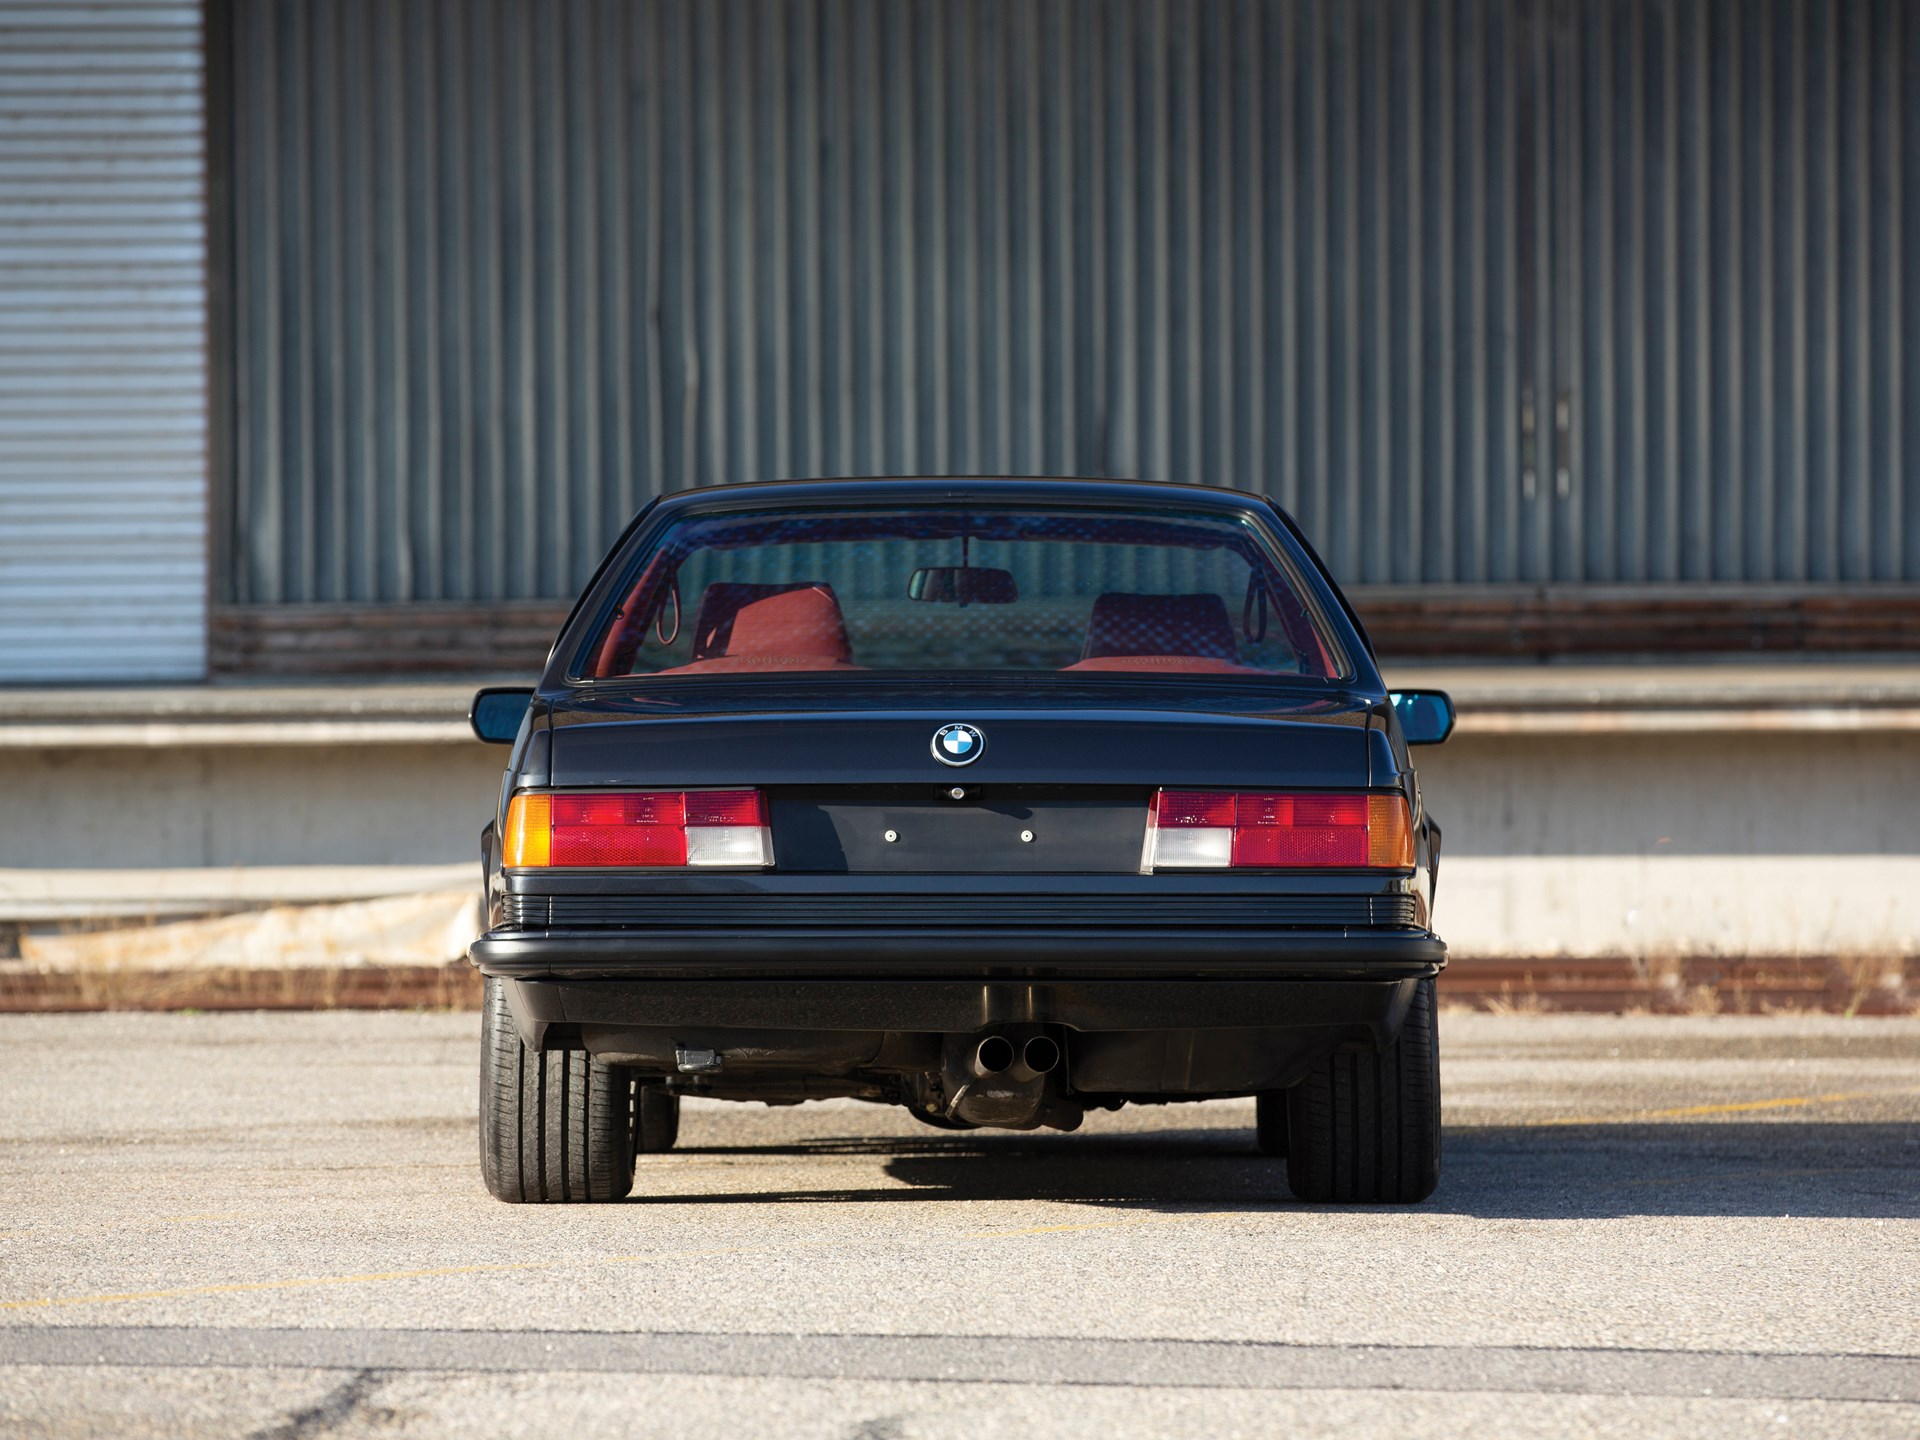 BMW Alpina B7 Turbo Coupe